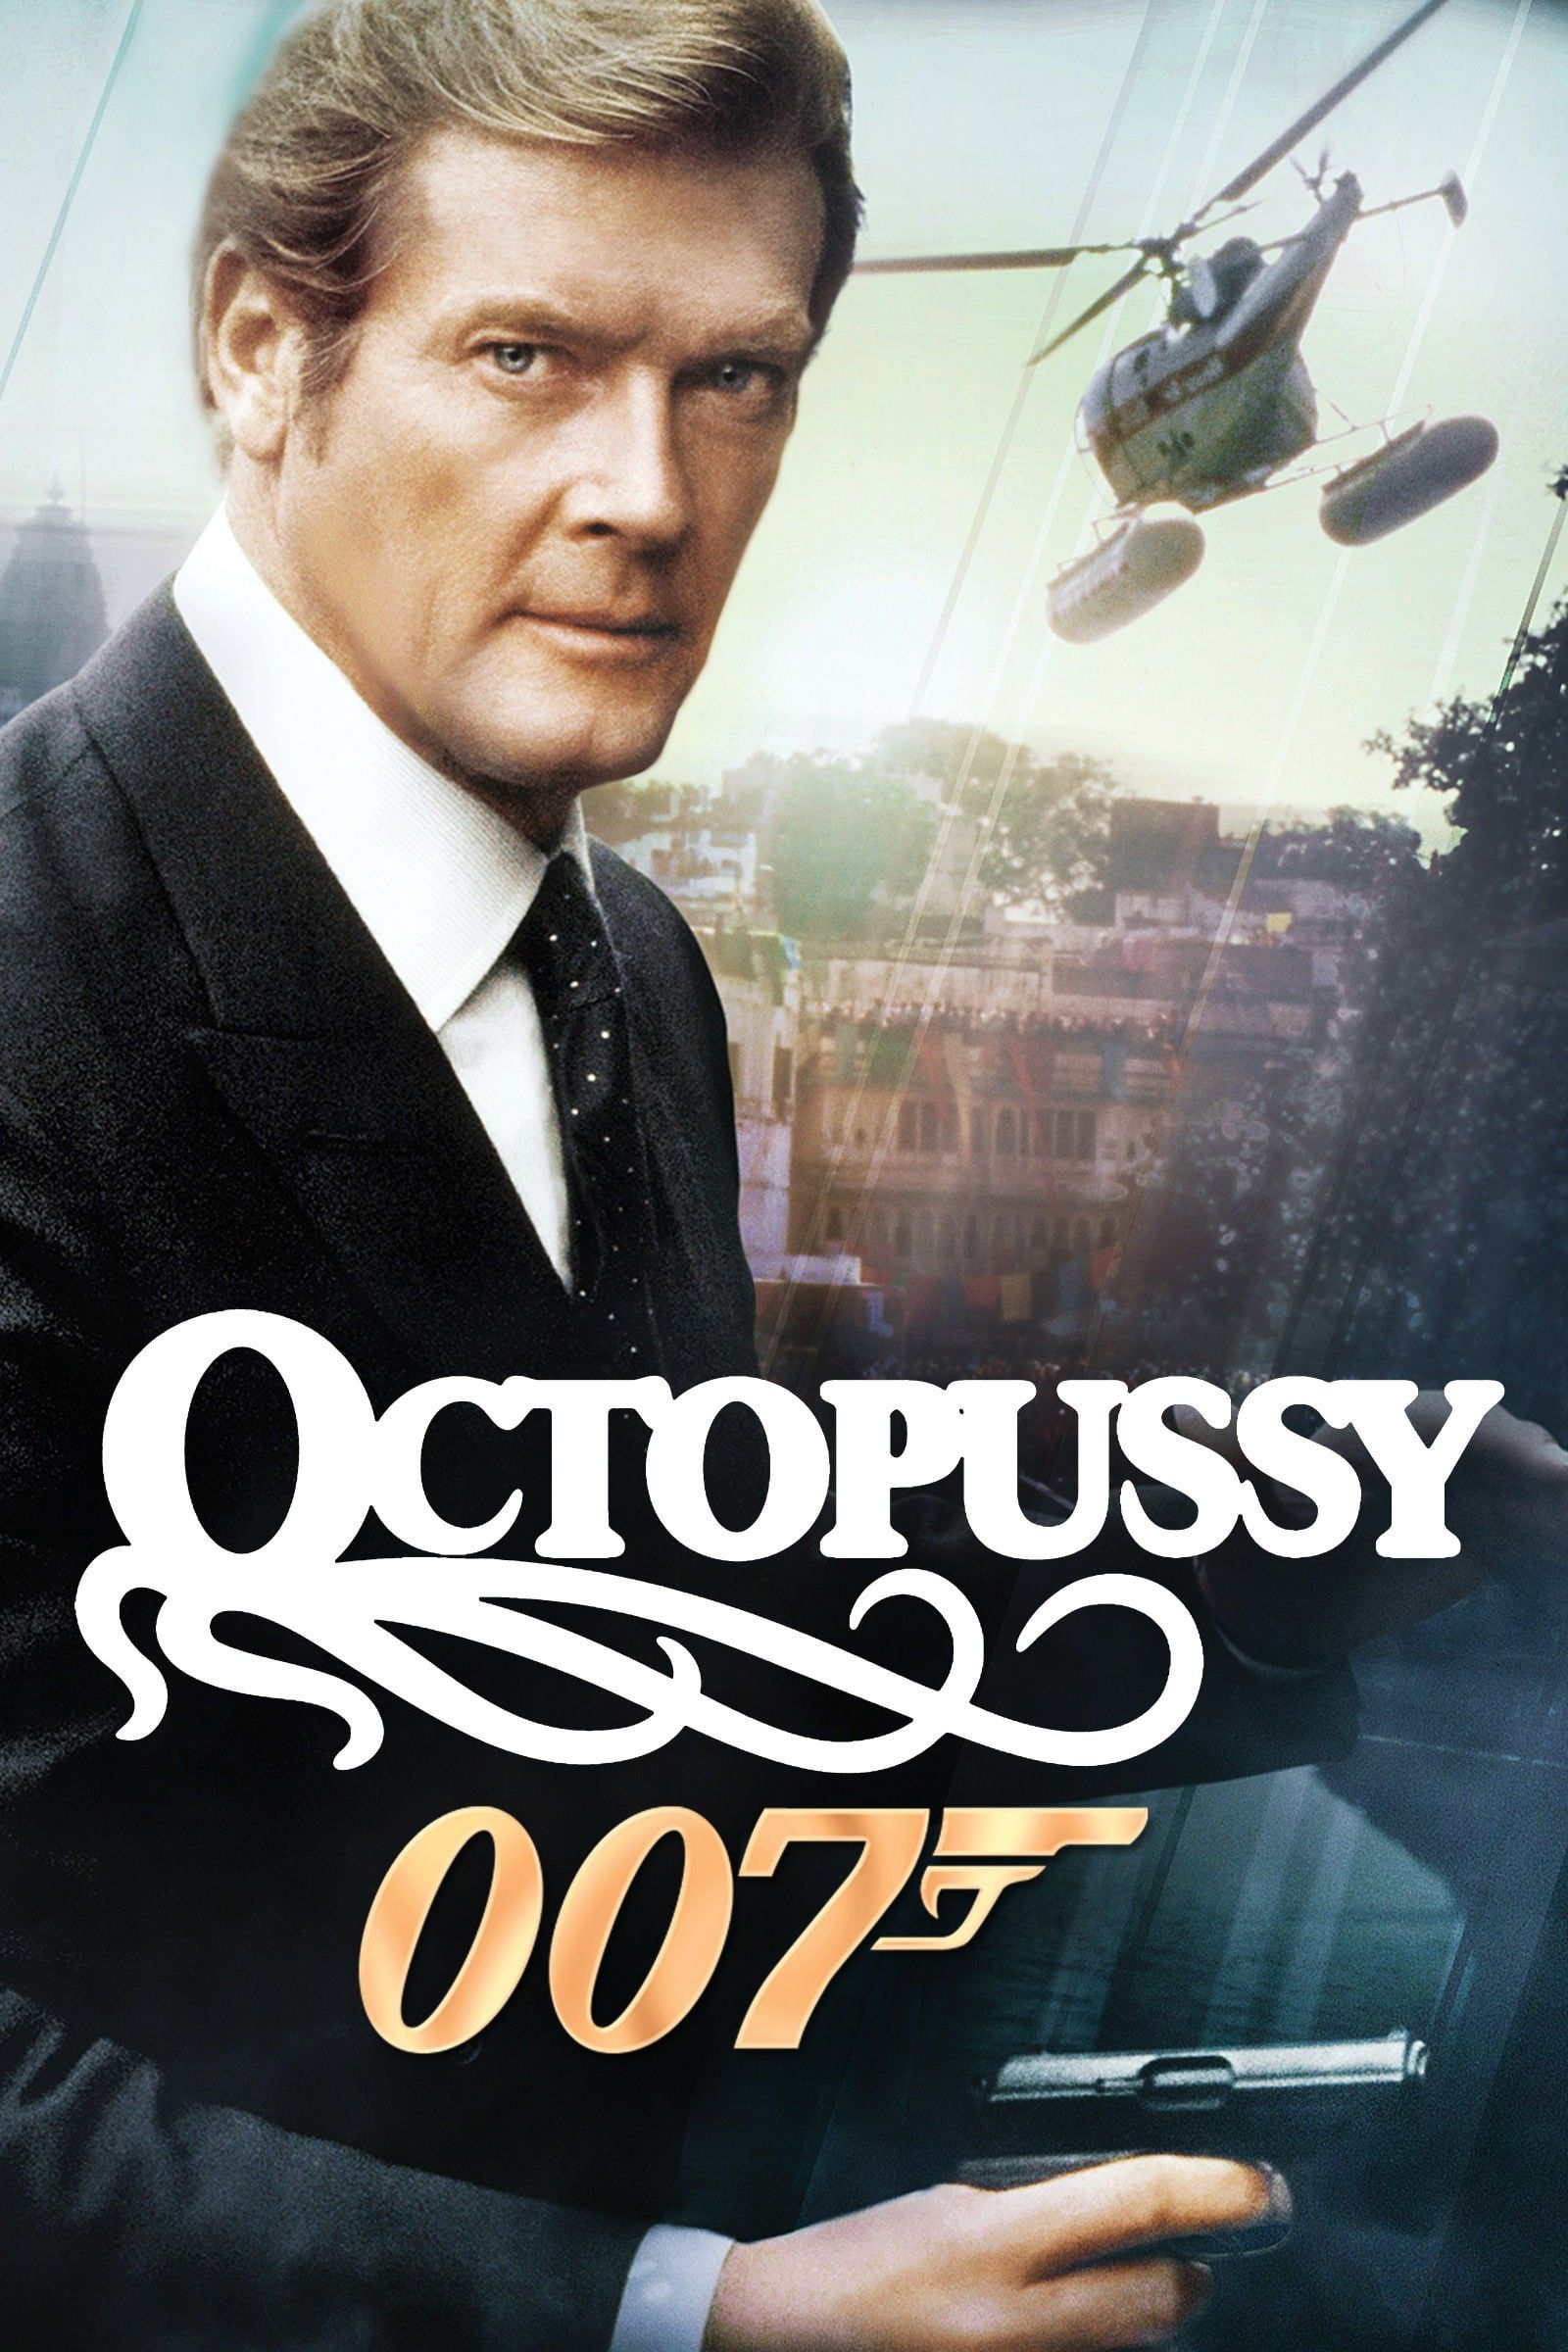 Watch Octopussy FULL MOVIE HD1080p Sub English Octopussy